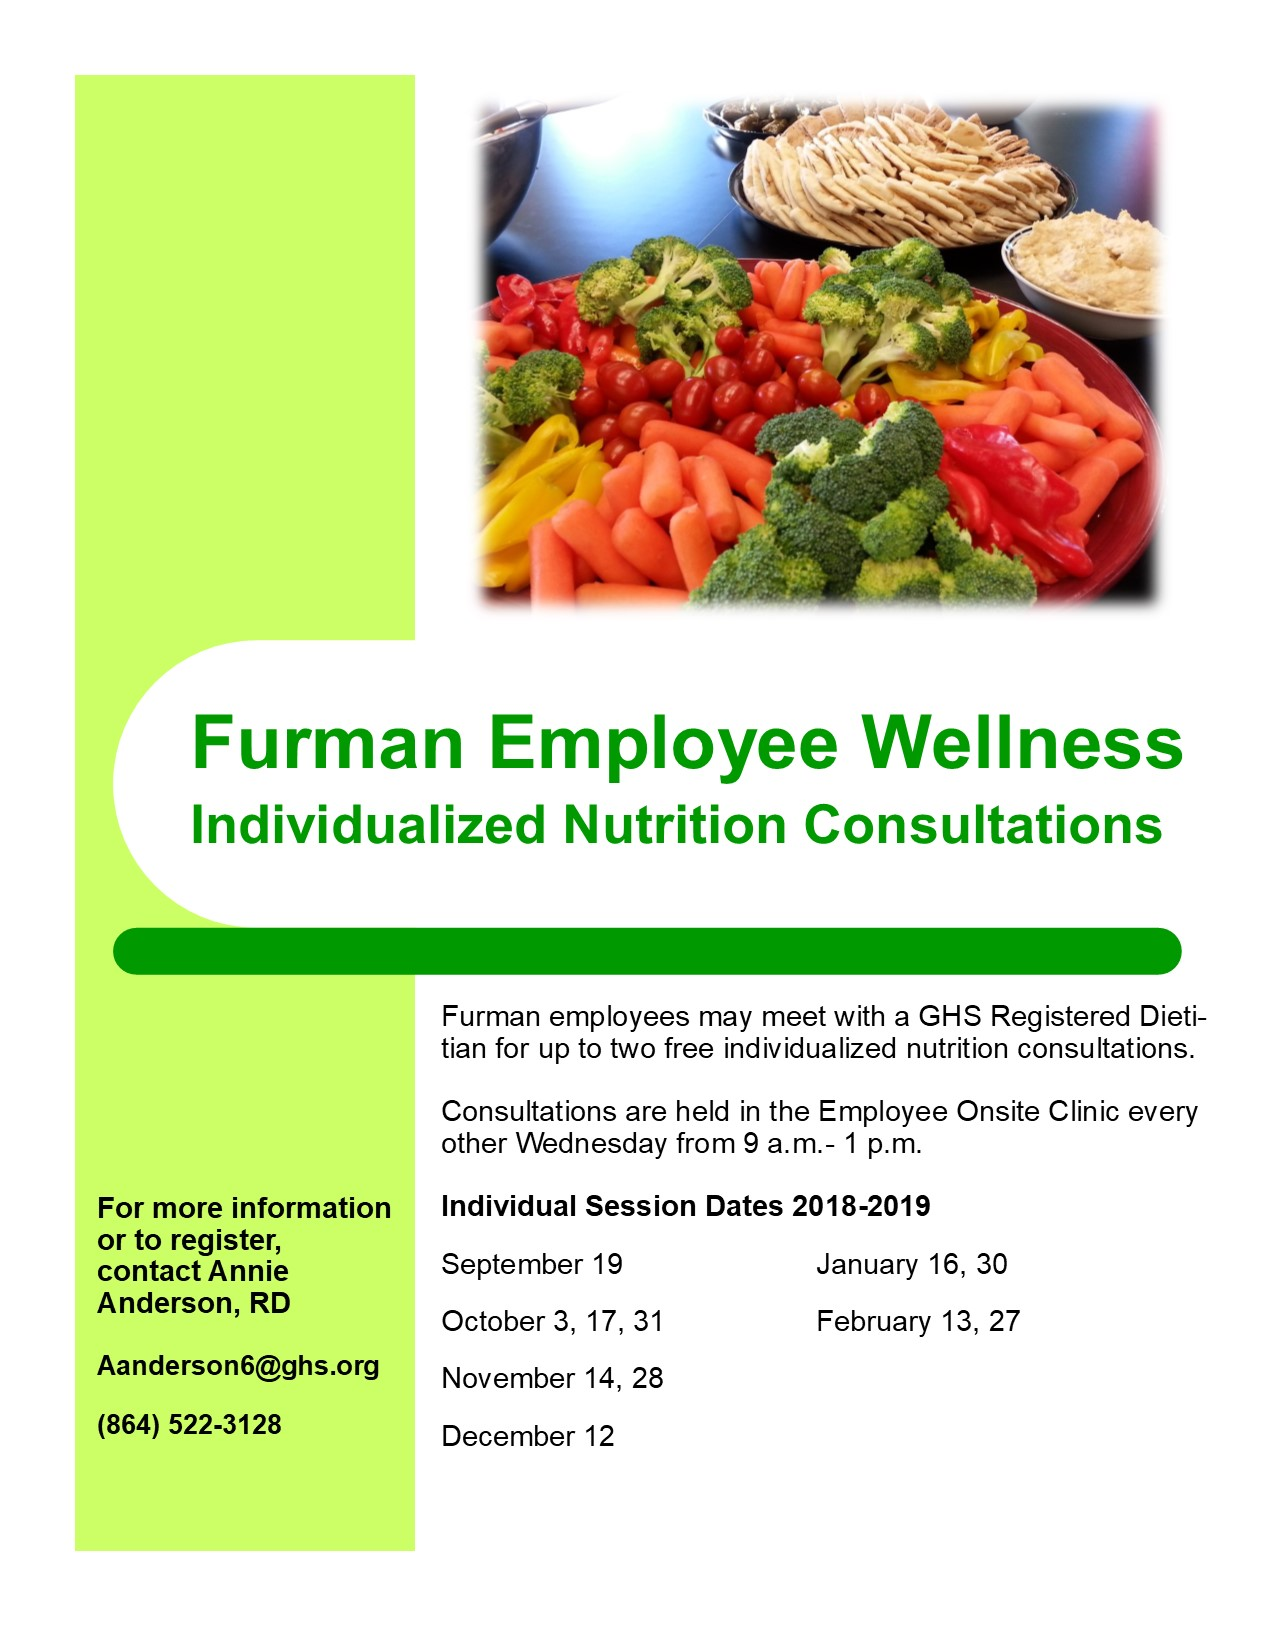 Free Nutrition Consultations for Furman Employees | Live